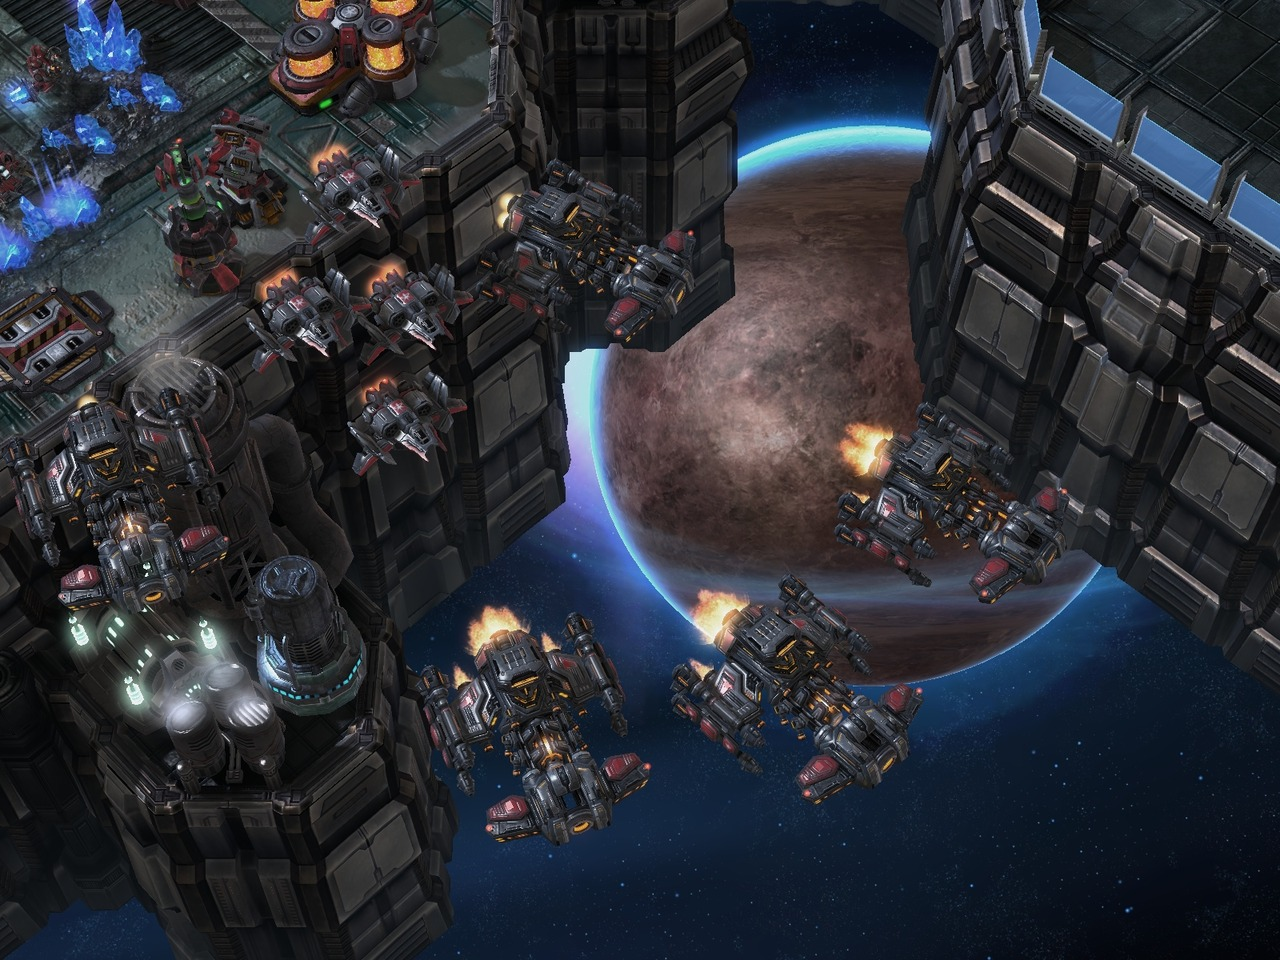 Pantallazo de Starcraft II: Heart of the Swarm para PC